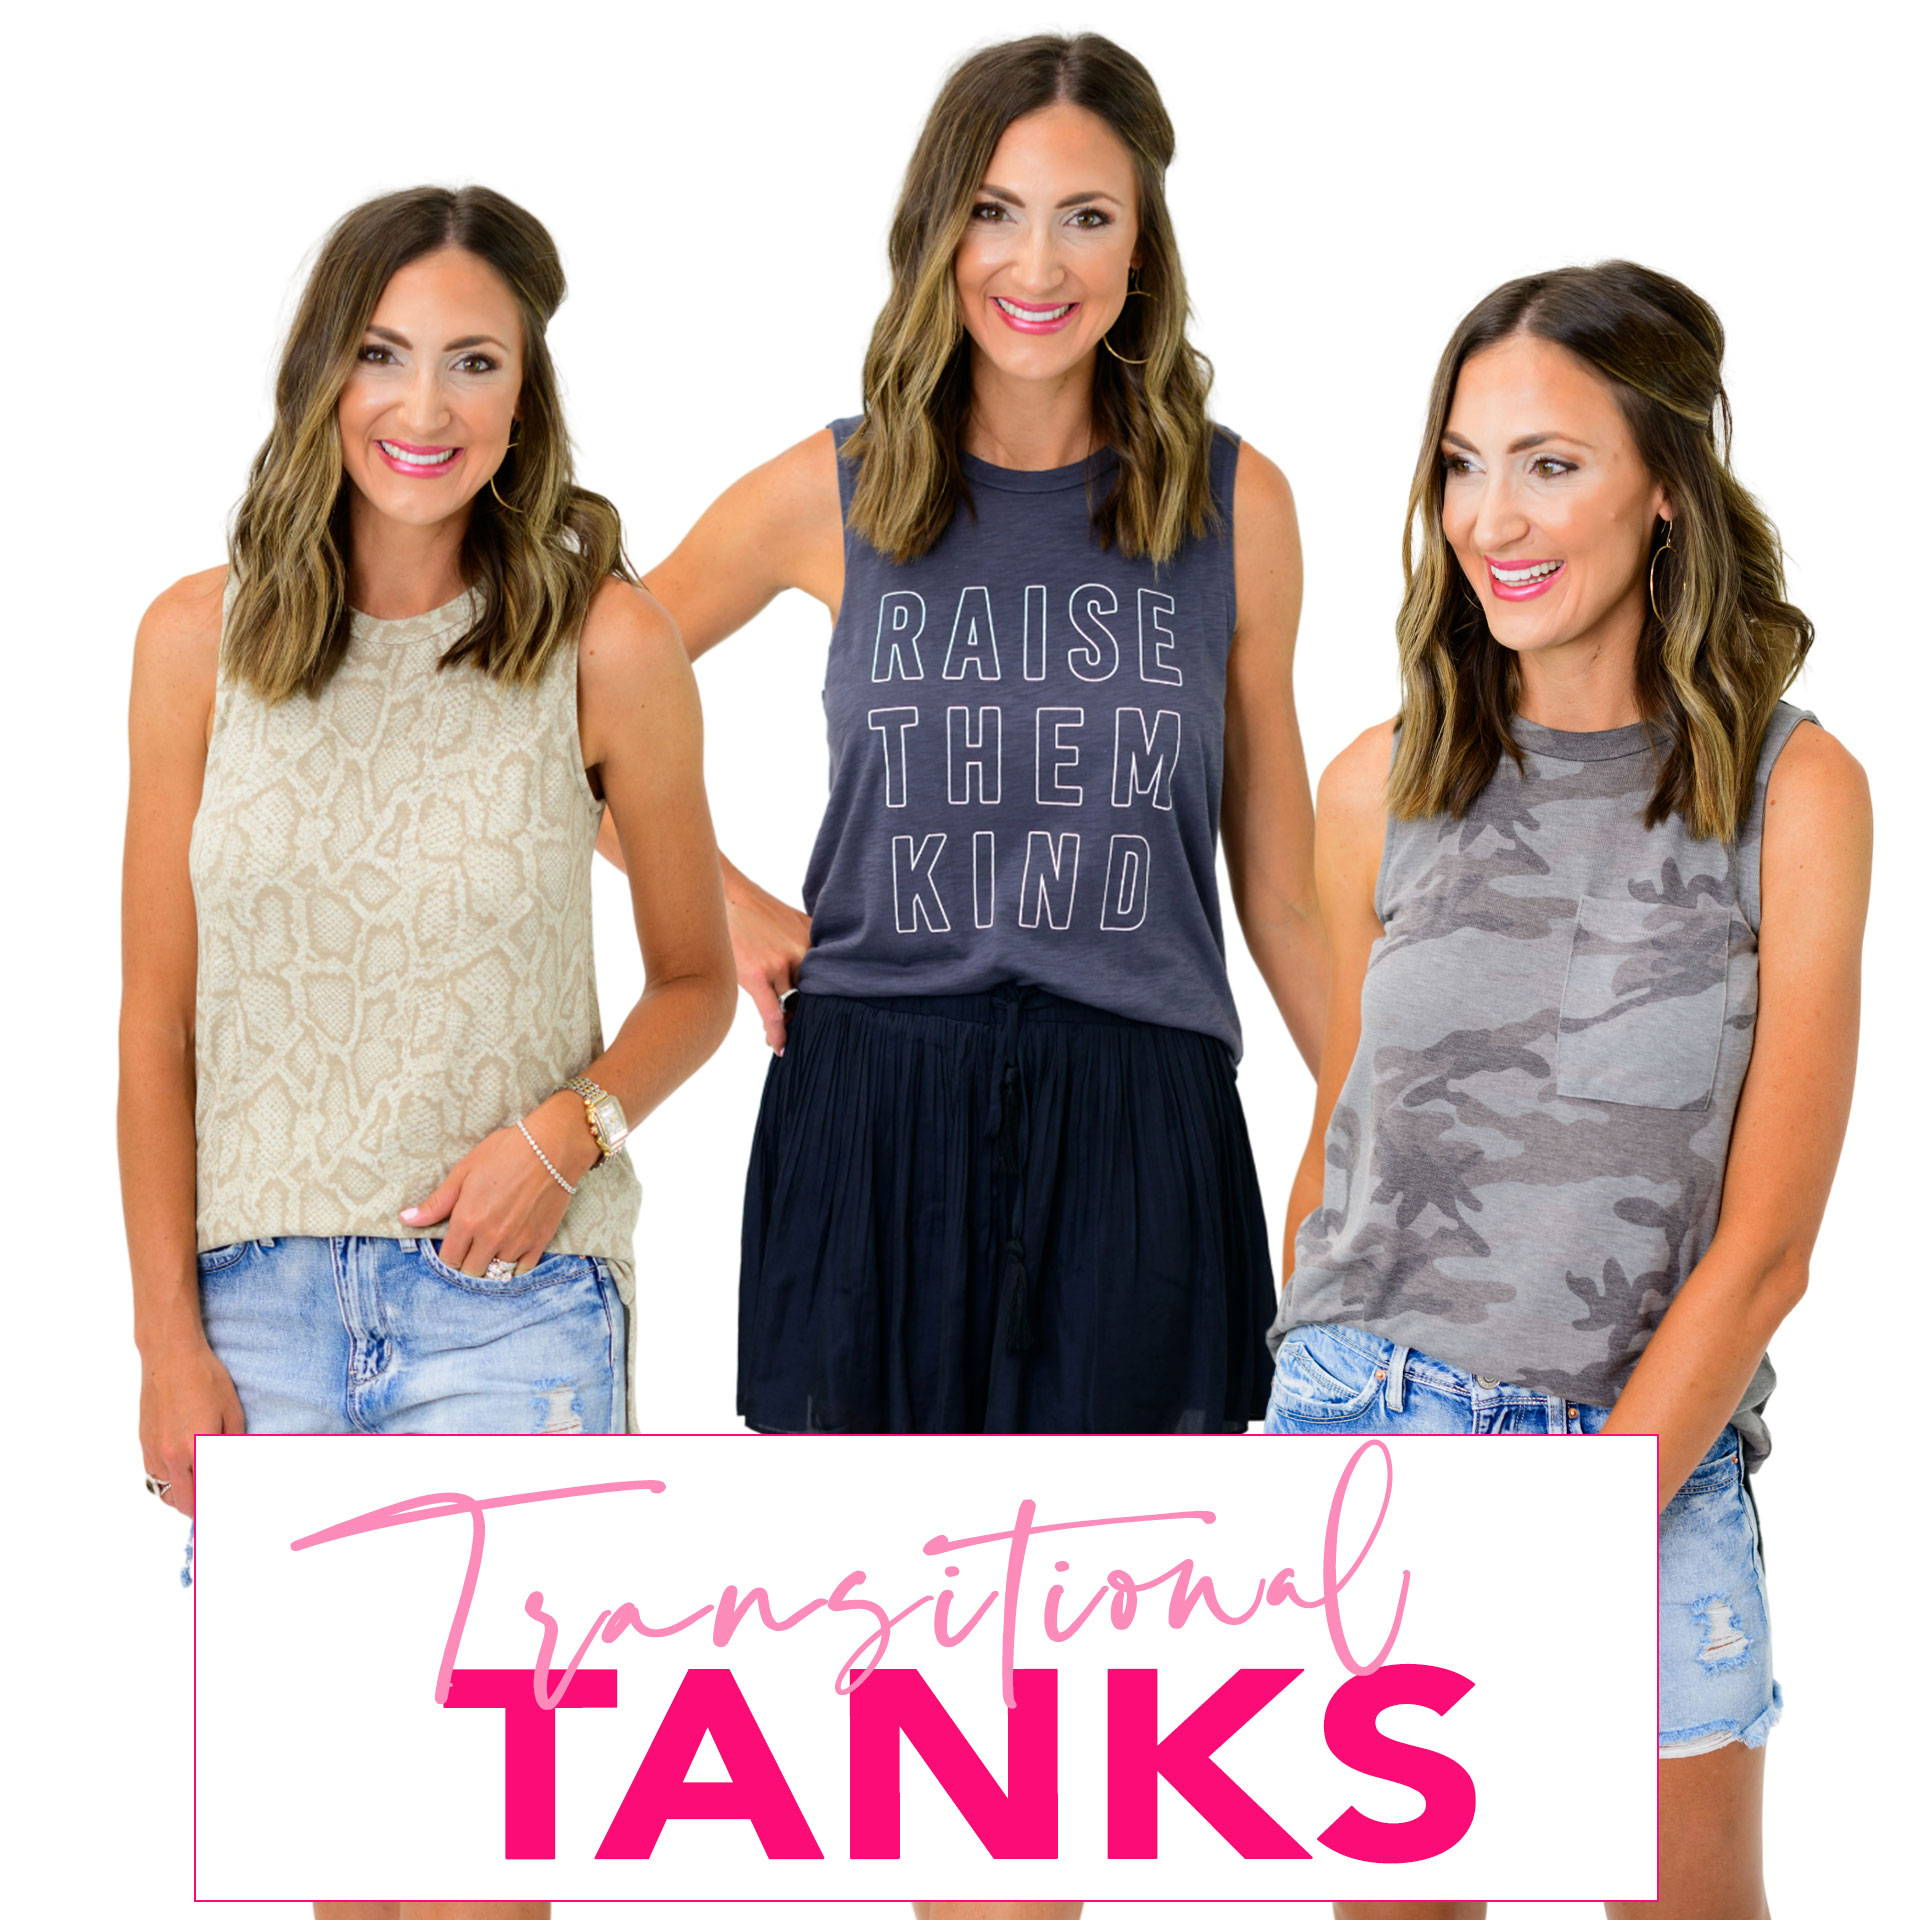 shoip-style-your-senses-by-mallory-fitzsimmons-transitional-tanks